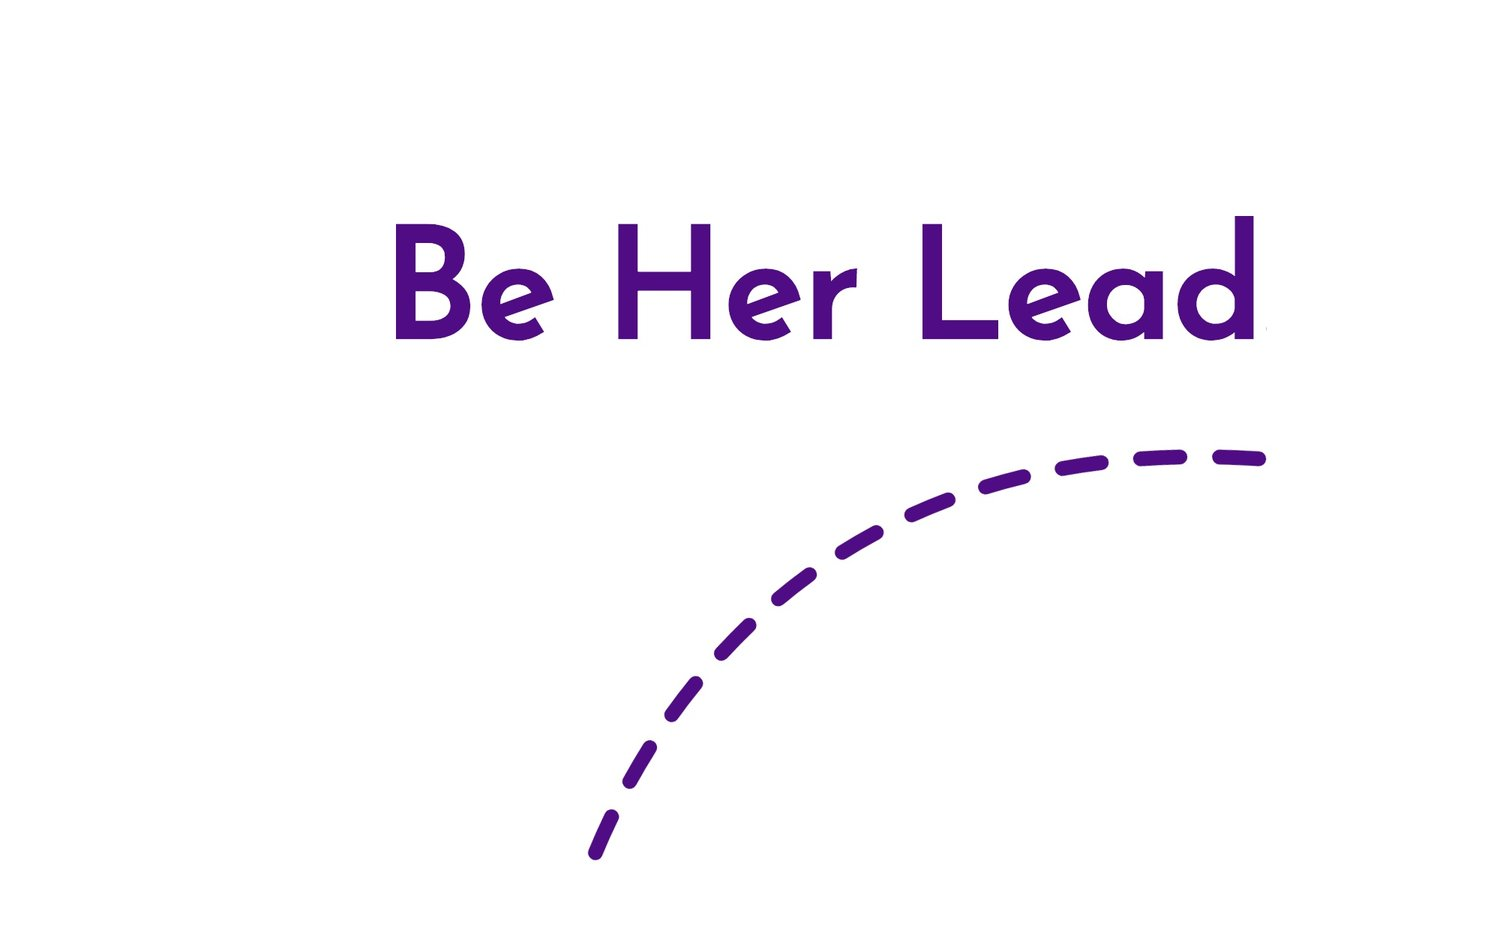 Be Her Lead